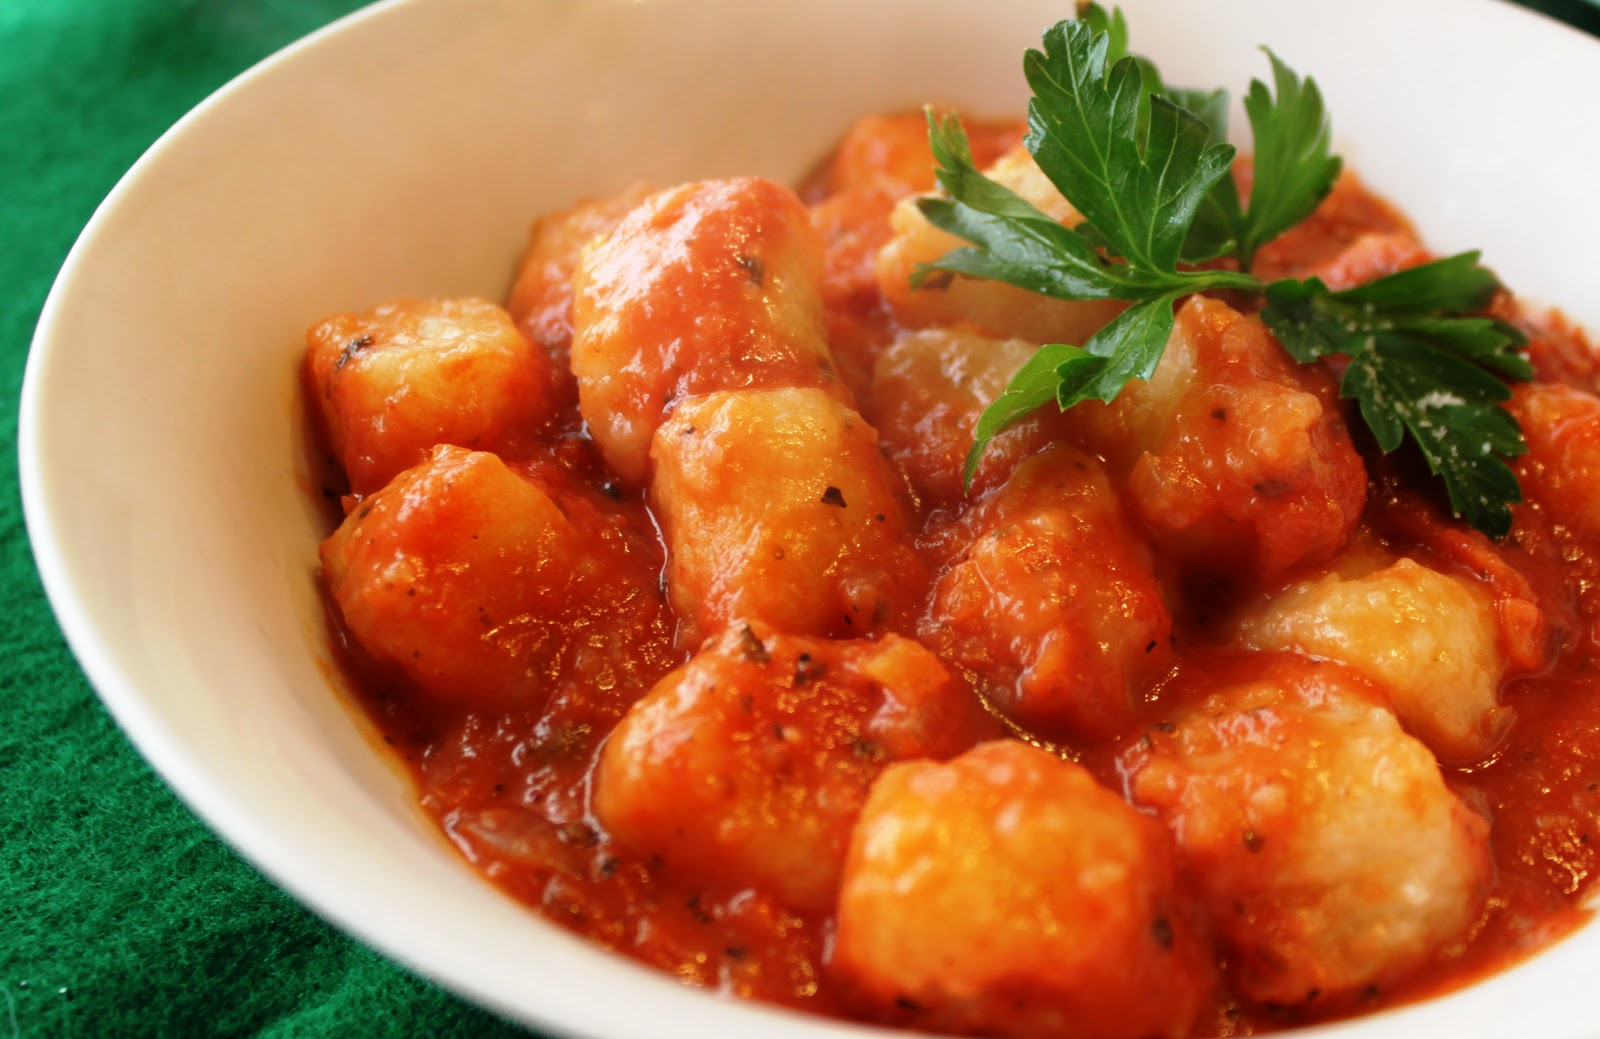 Gnocchi with Creamy Marinara Sauce